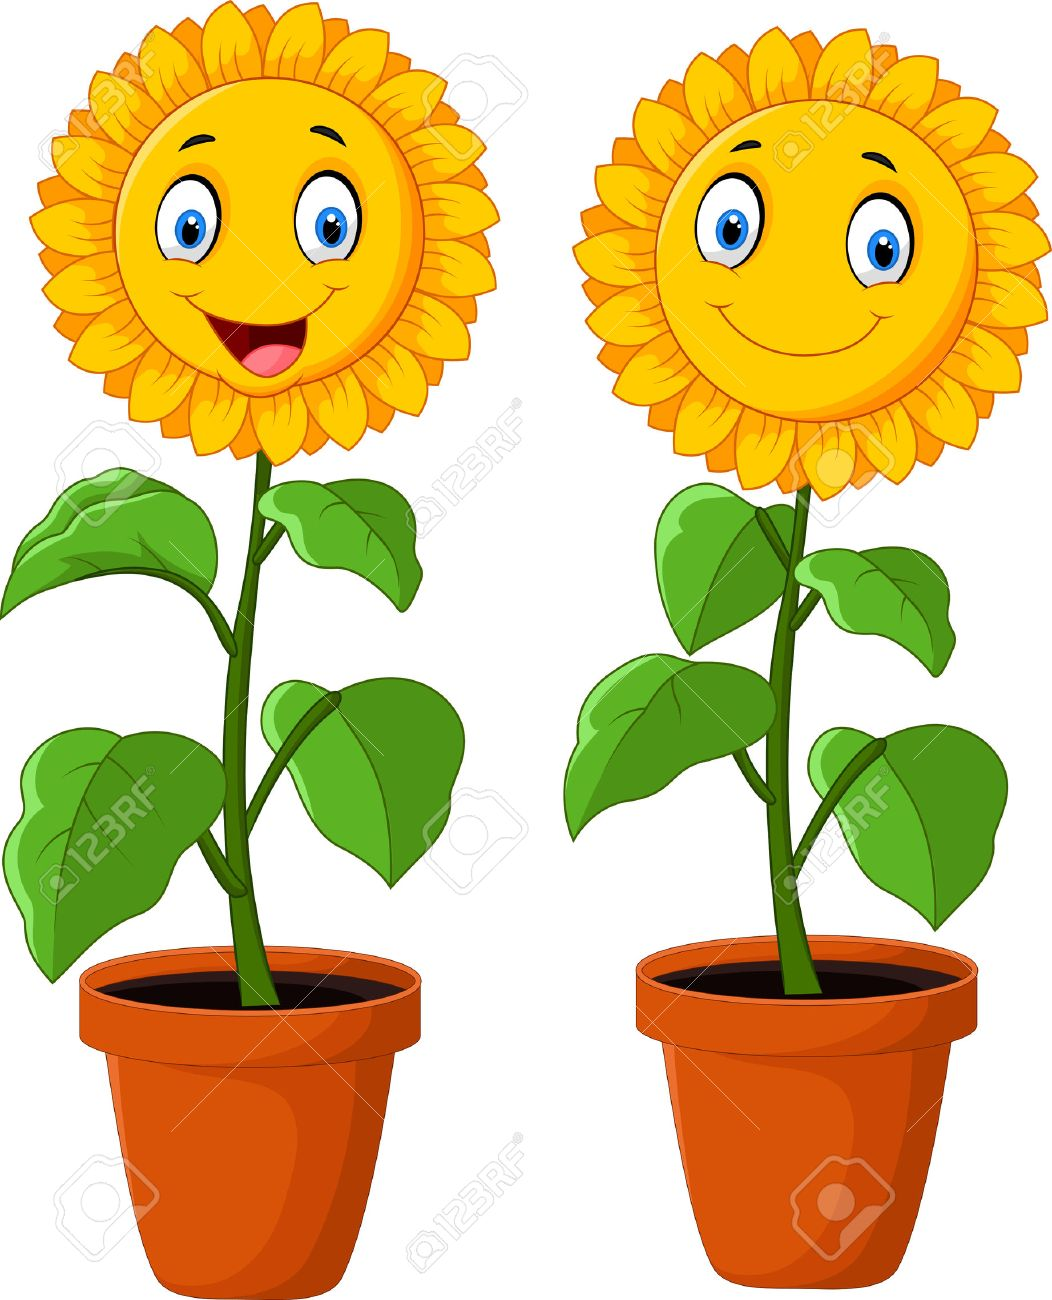 Planters clipart picture Flower clip art planter - 15 clip arts for free download on ... picture